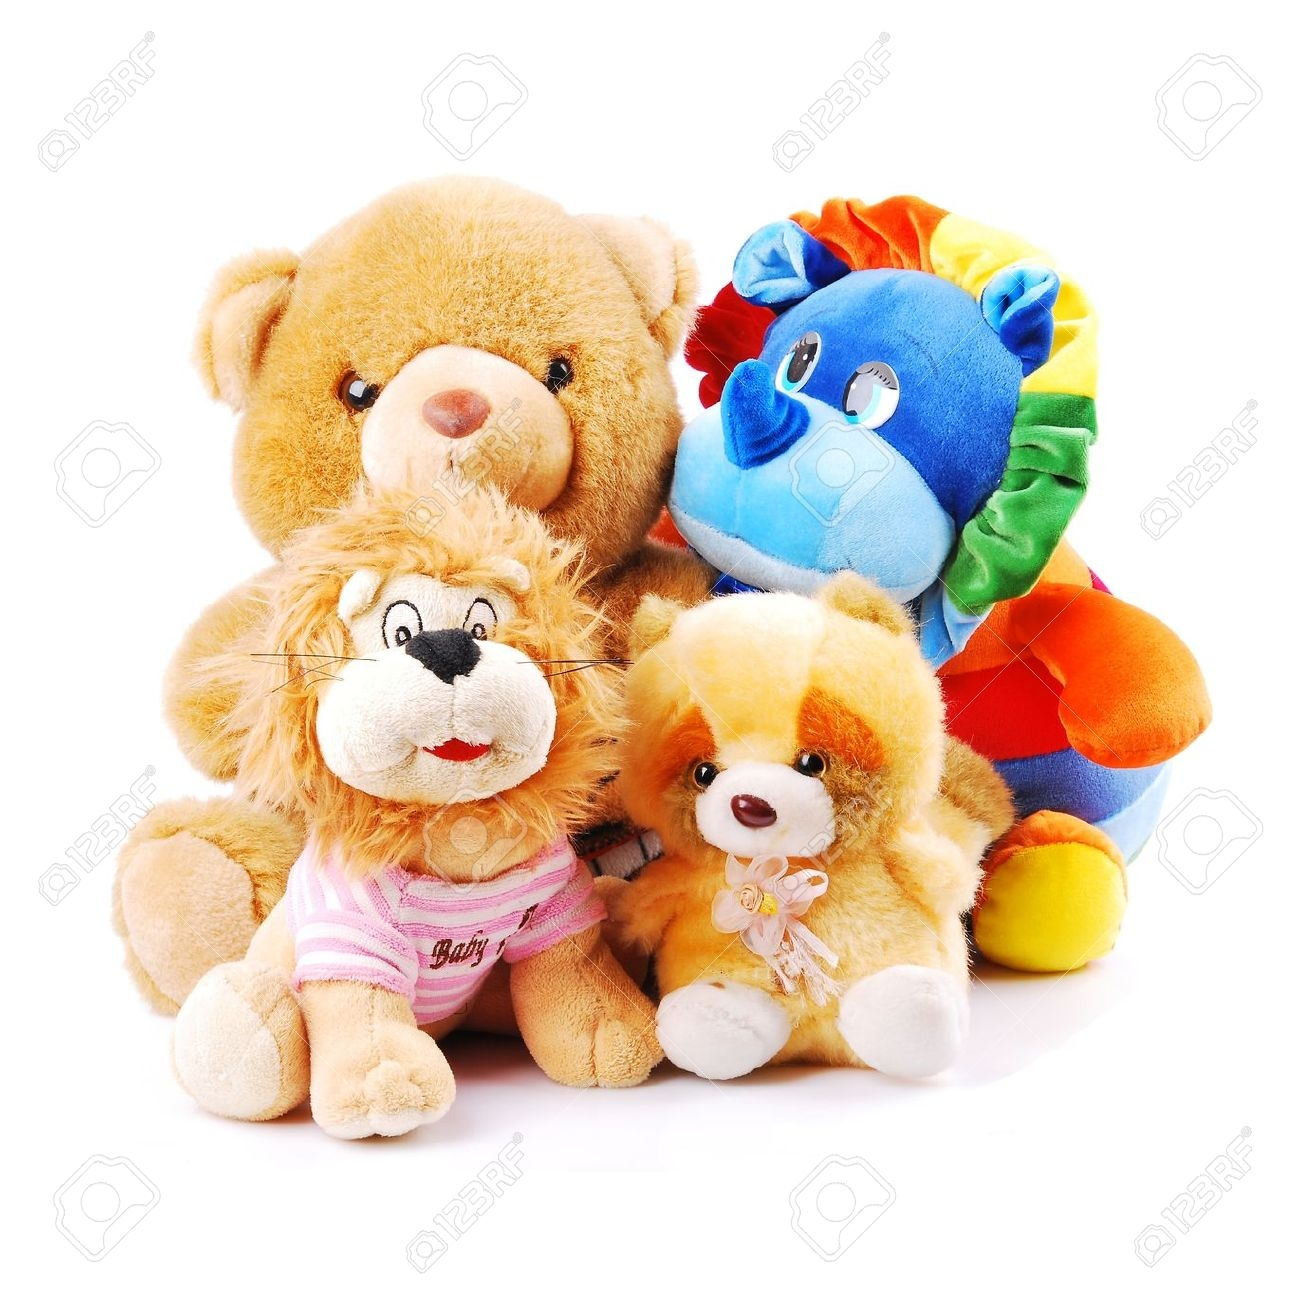 Pile Of Stuffed Animals Clipart.